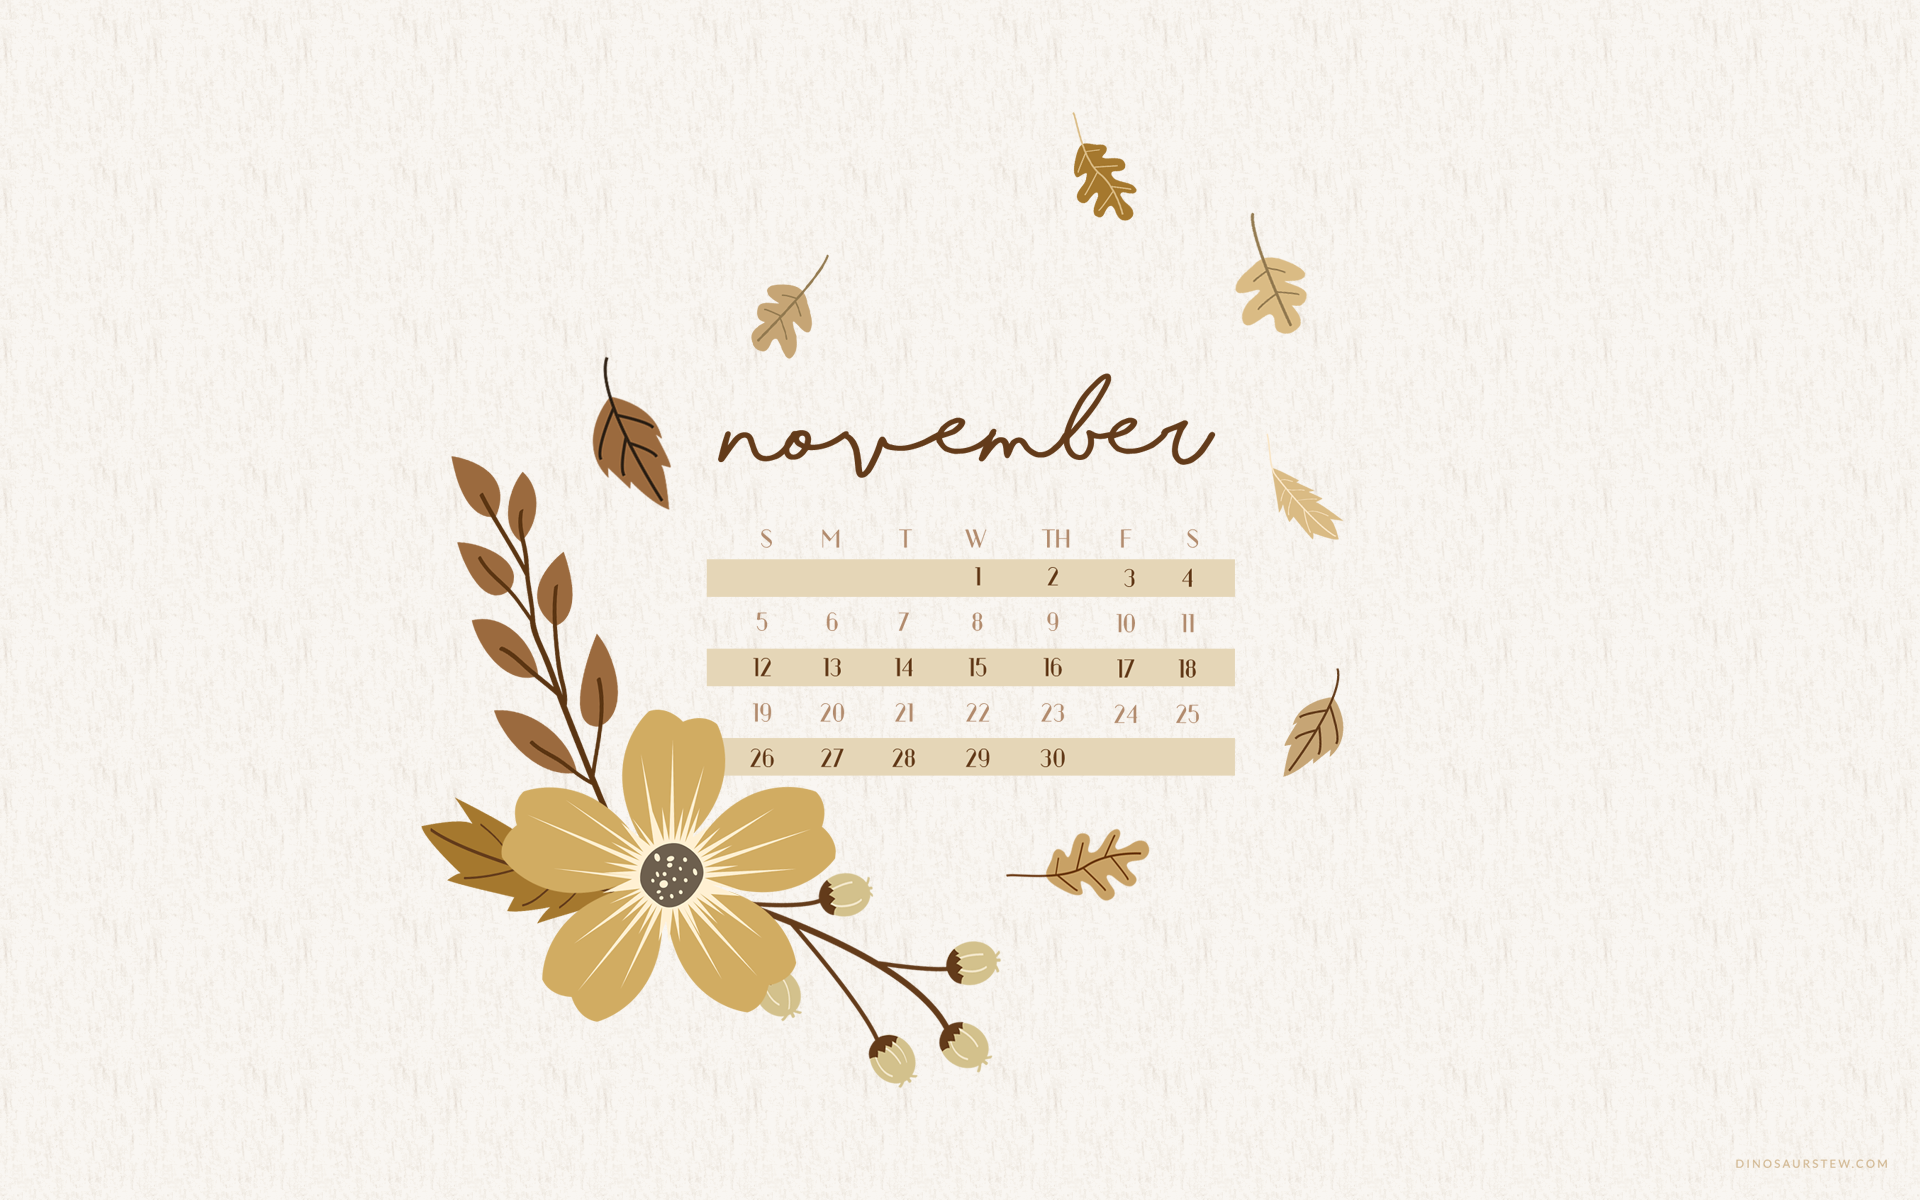 November 2017 Calendar Wallpaper  For Desktop  Mobile Devices!